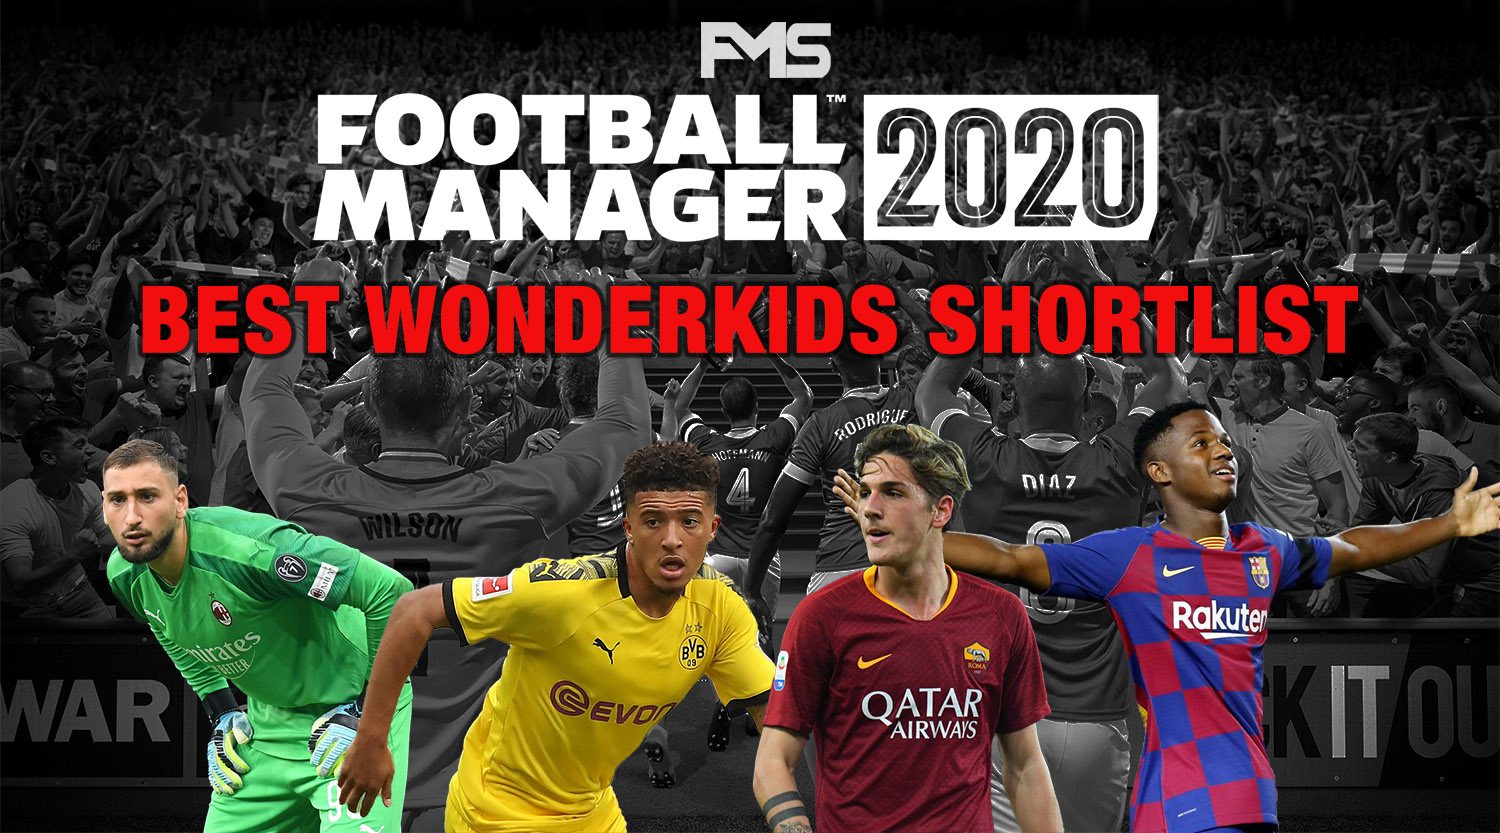 Best FM20 Wonderkids Shortlist